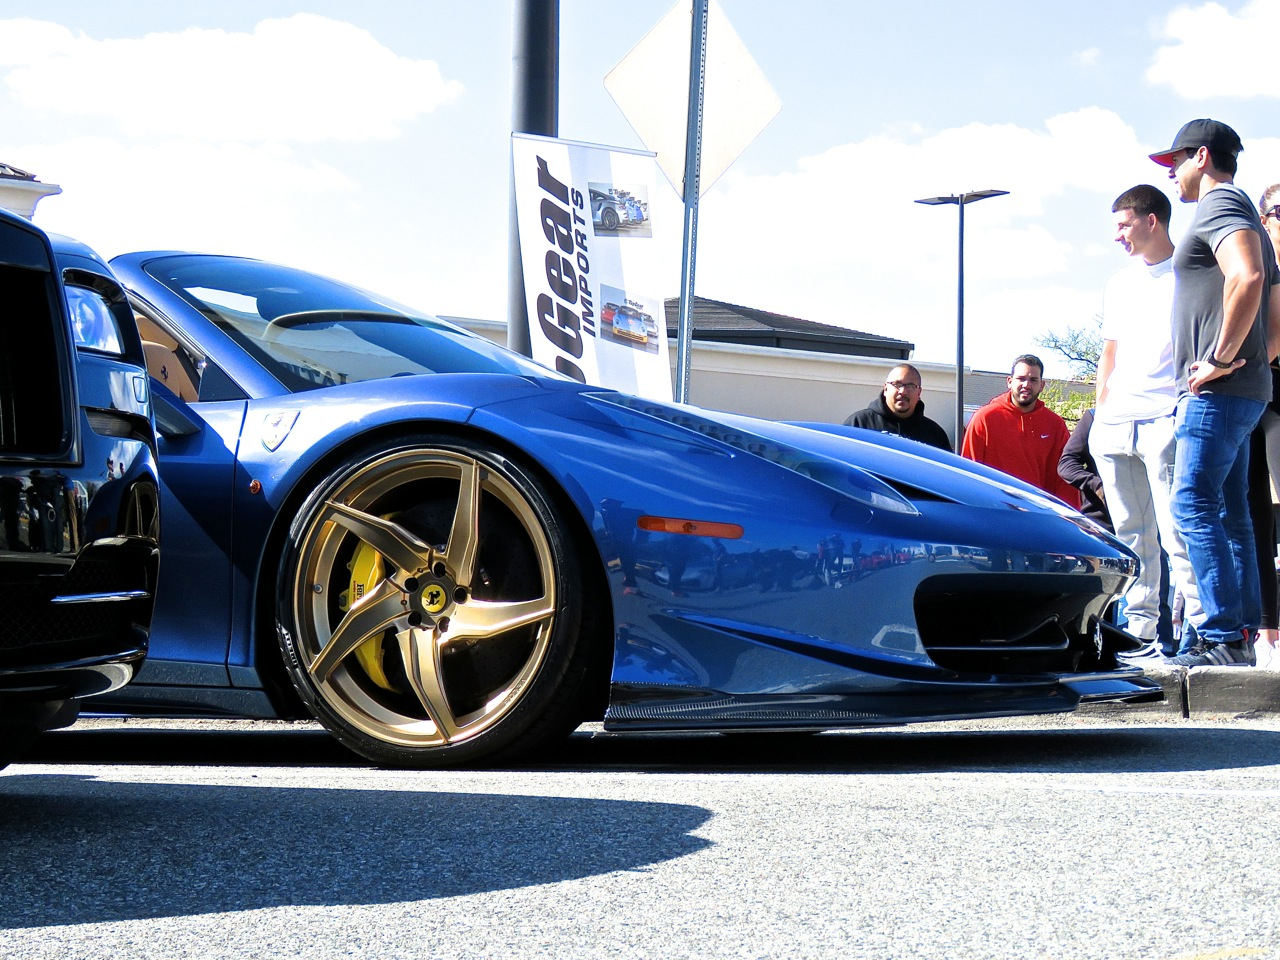 Ferrari 458 at Garden State Plaza